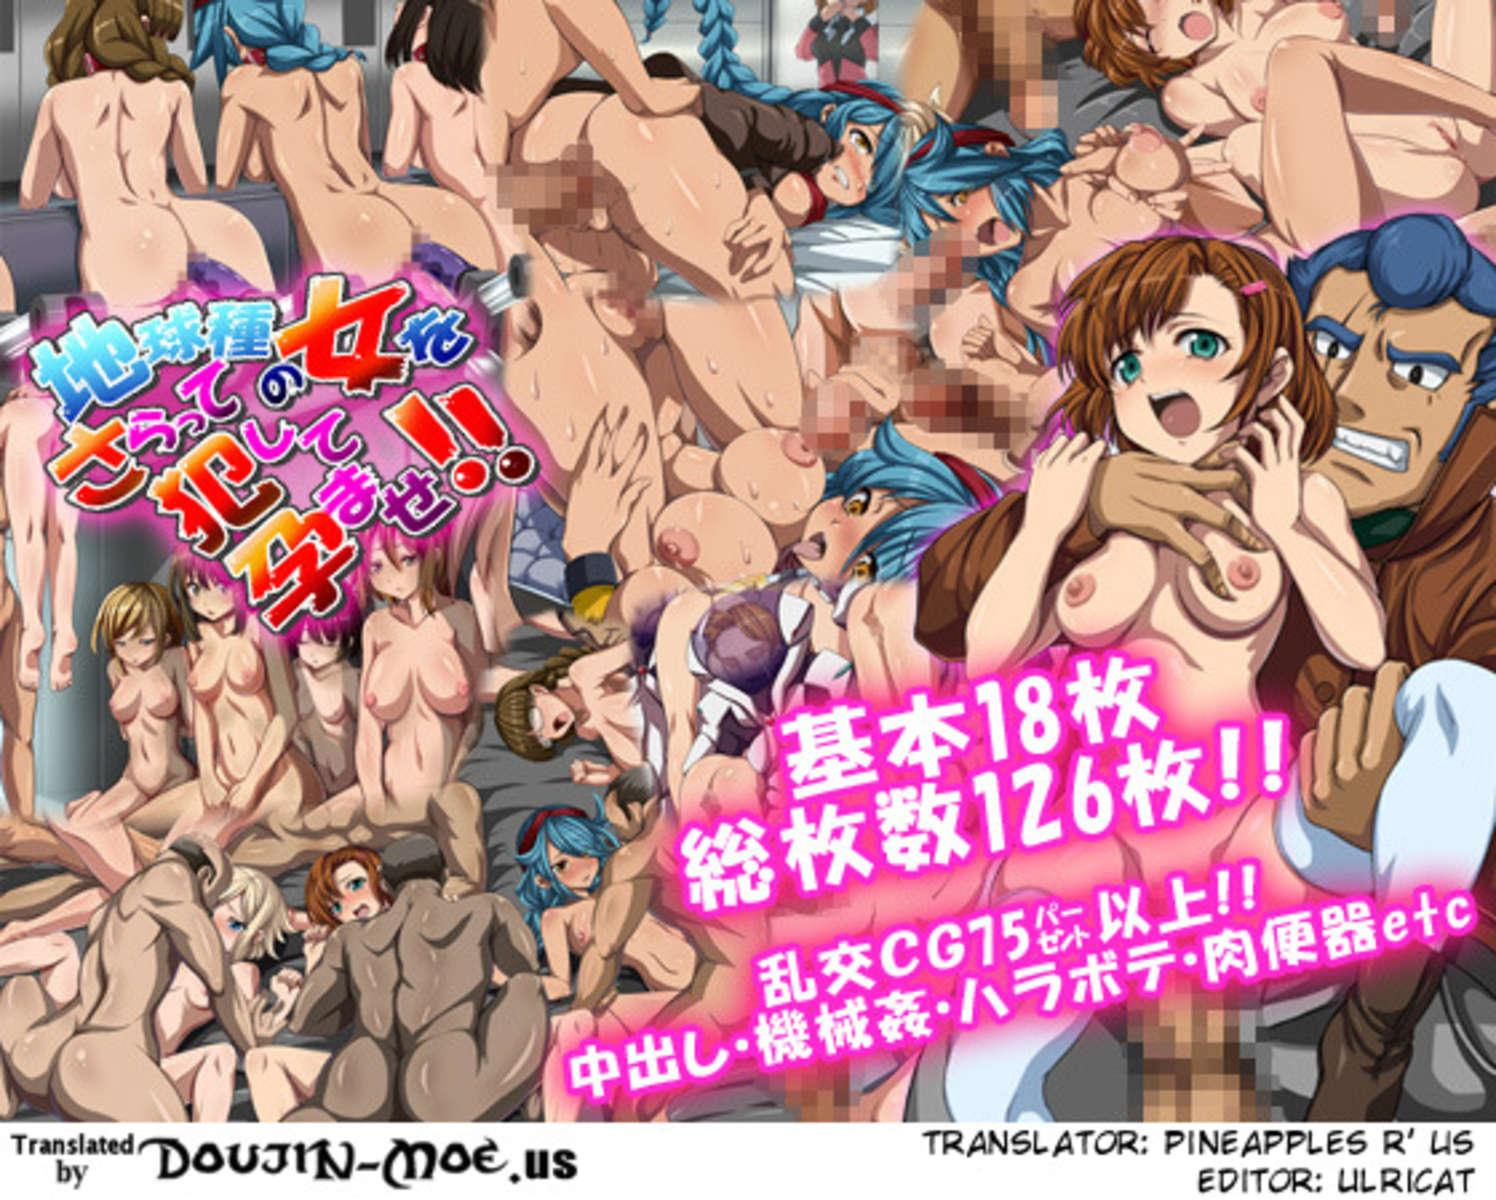 Humiliation Hentai Ele impregnate all the abducted earth-women 1 - read manga impregnate